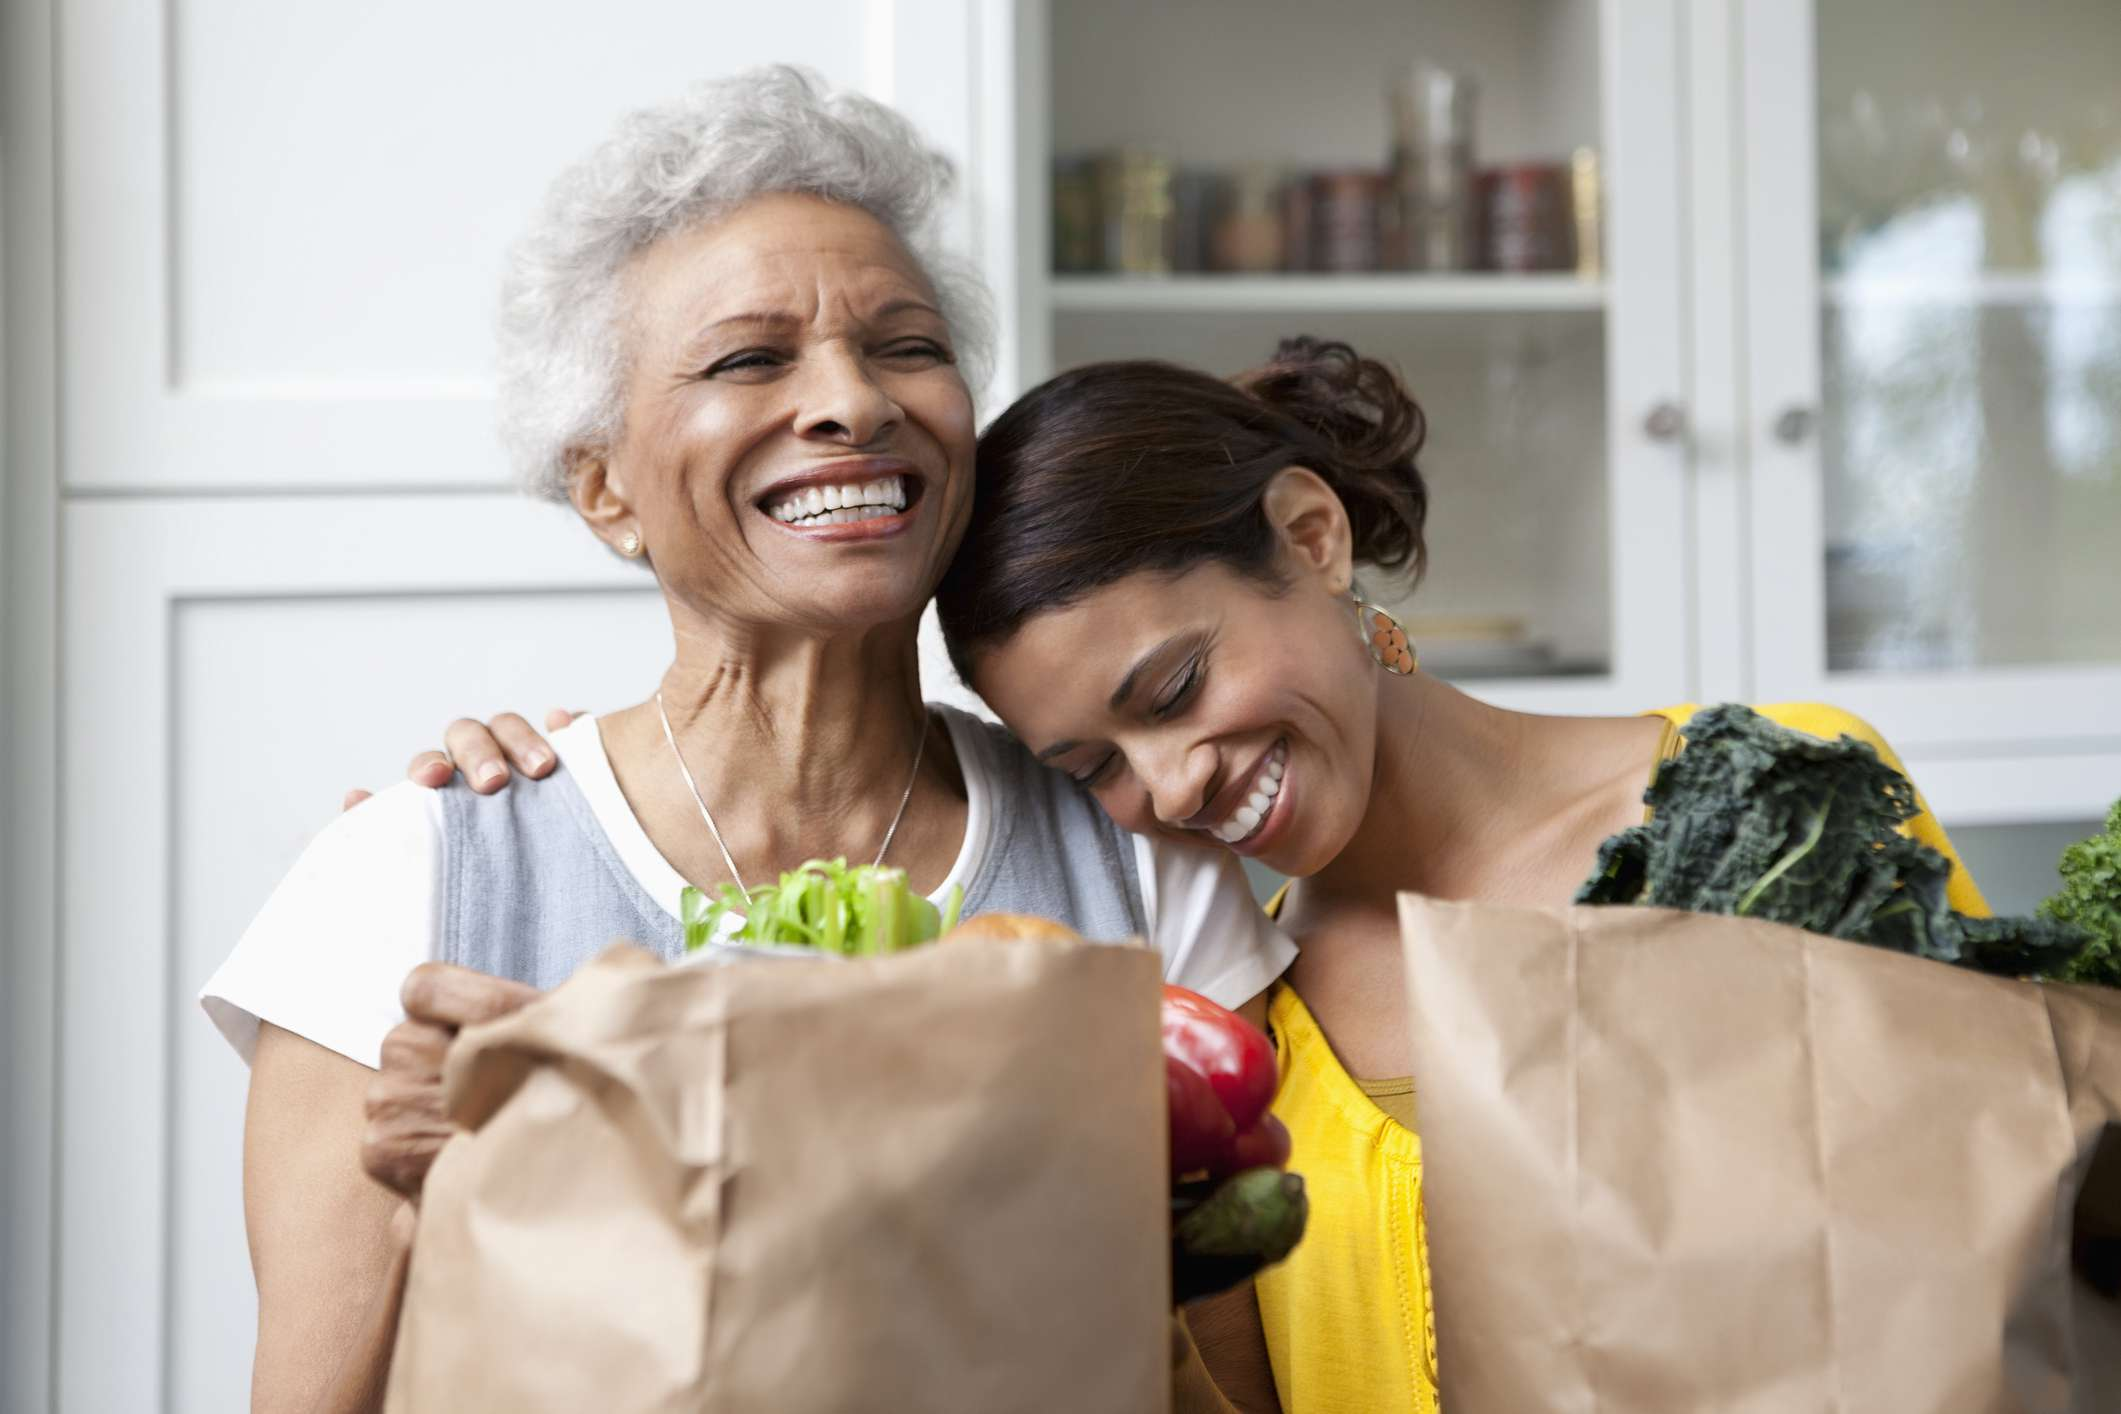 Mother and adult daughter unloading grocery bags